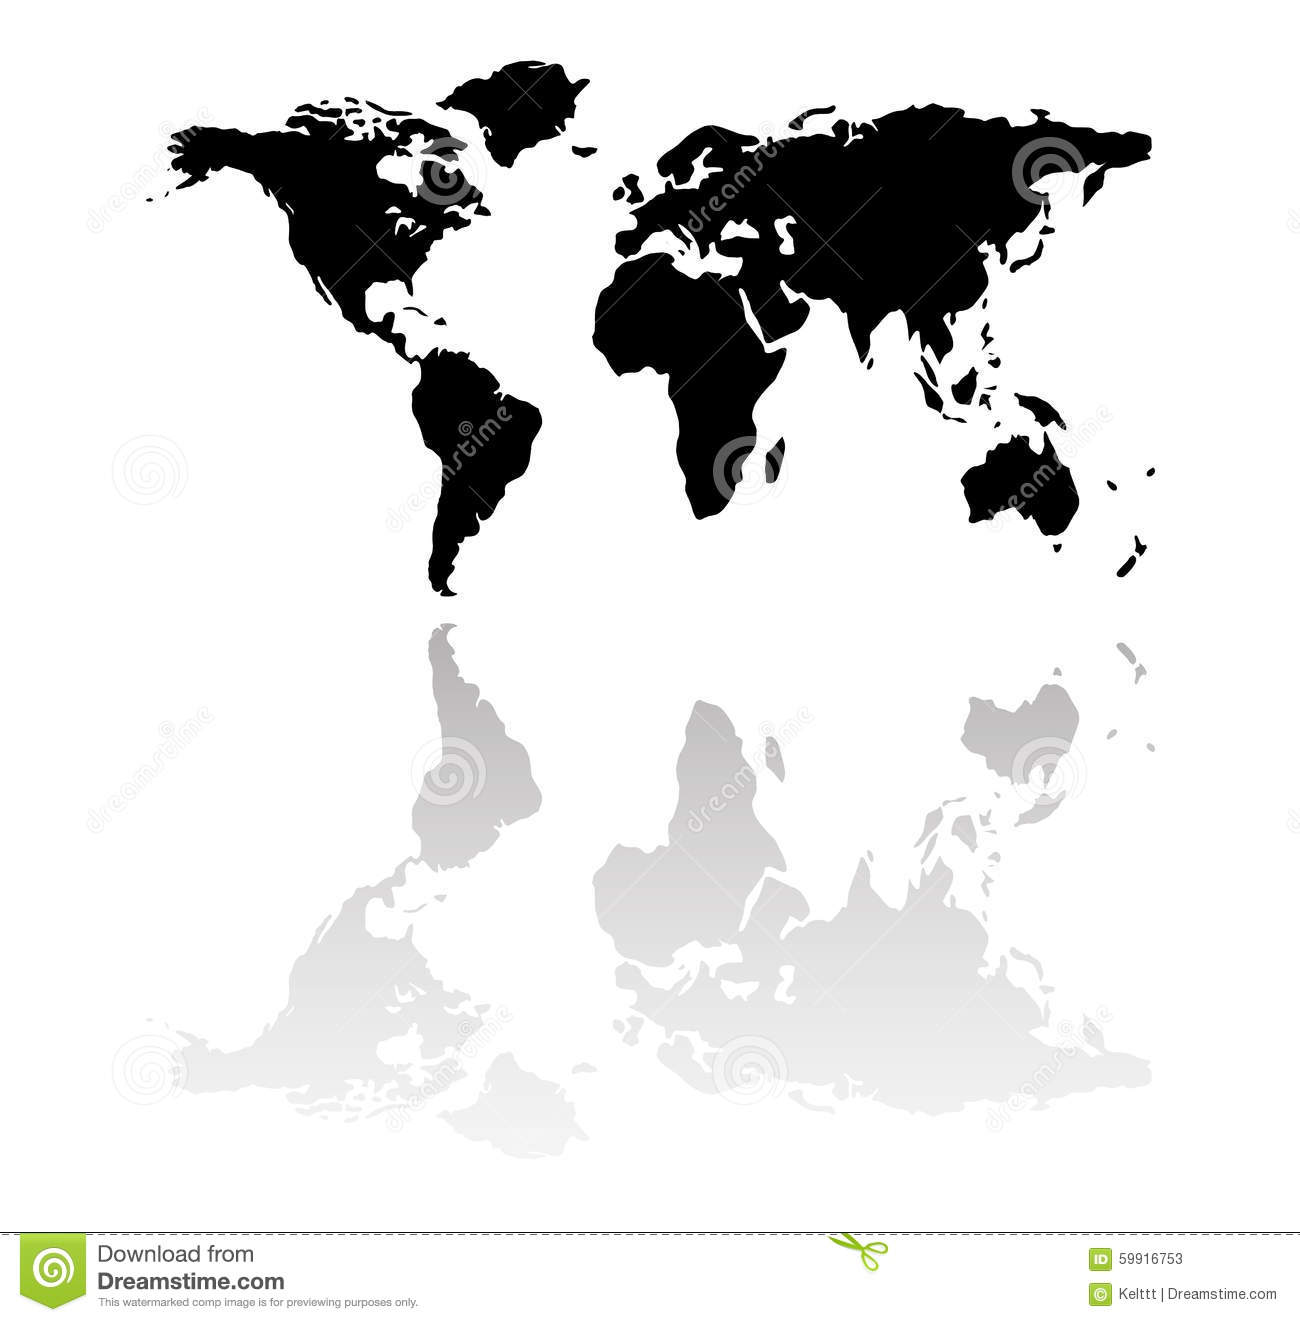 Black world map silhouette stock illustration illustration of info black world map silhouette royalty free illustration gumiabroncs Gallery